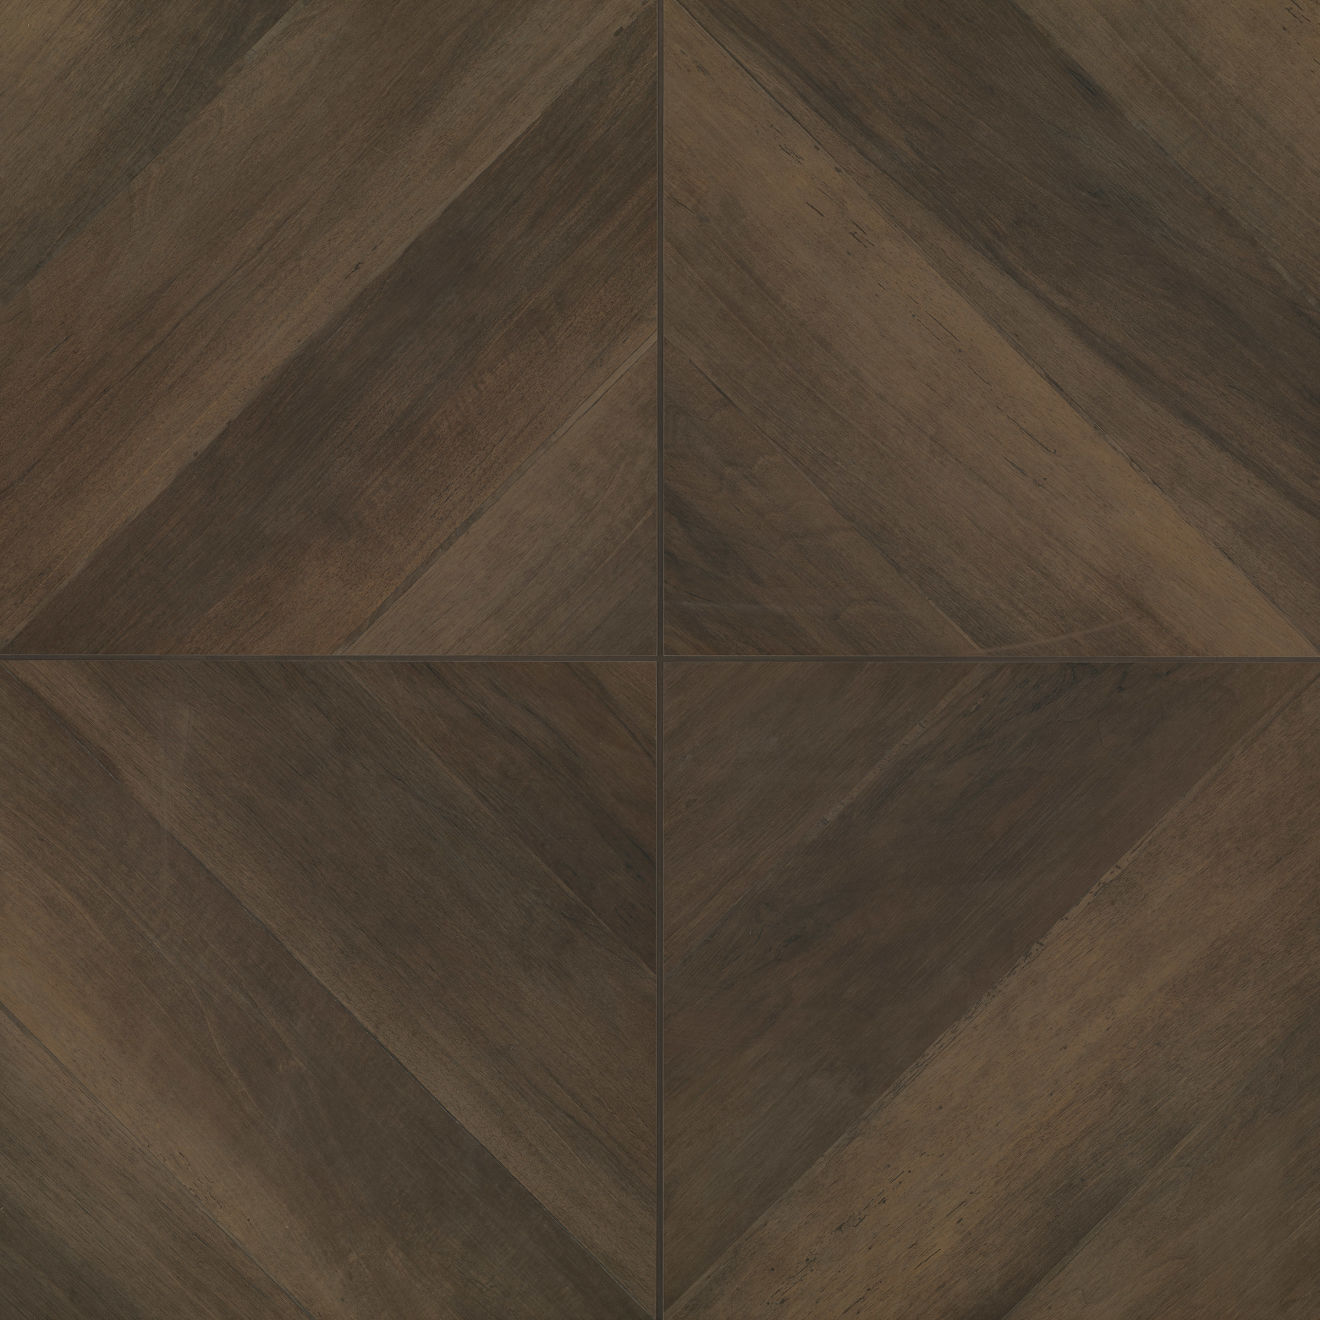 Antique 24 X 24 Floor Wall Tile In Wenge